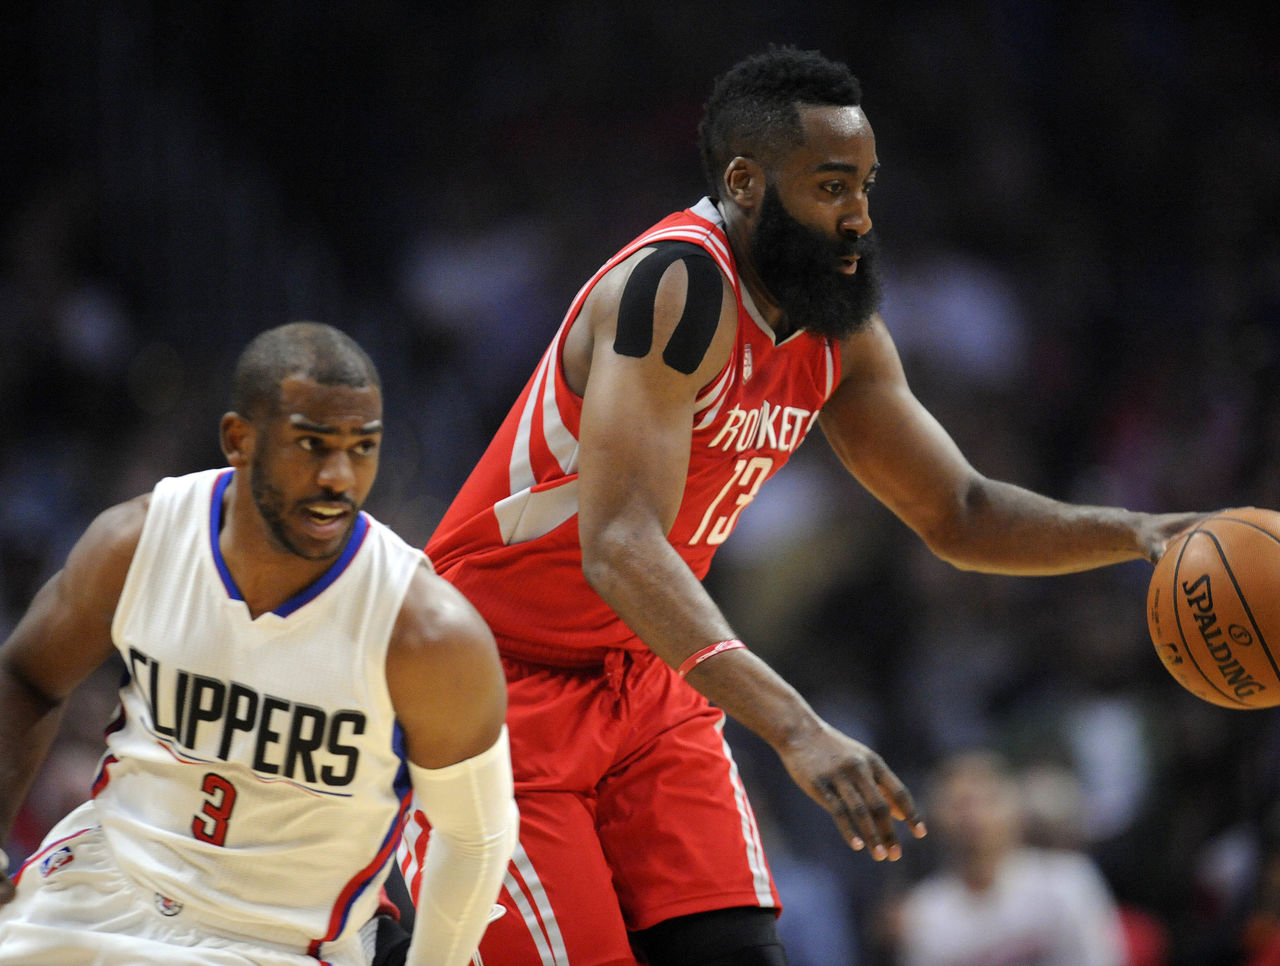 Cropped 2017 04 11t031401z 2059330463 nocid rtrmadp 3 nba houston rockets at los angeles clippers